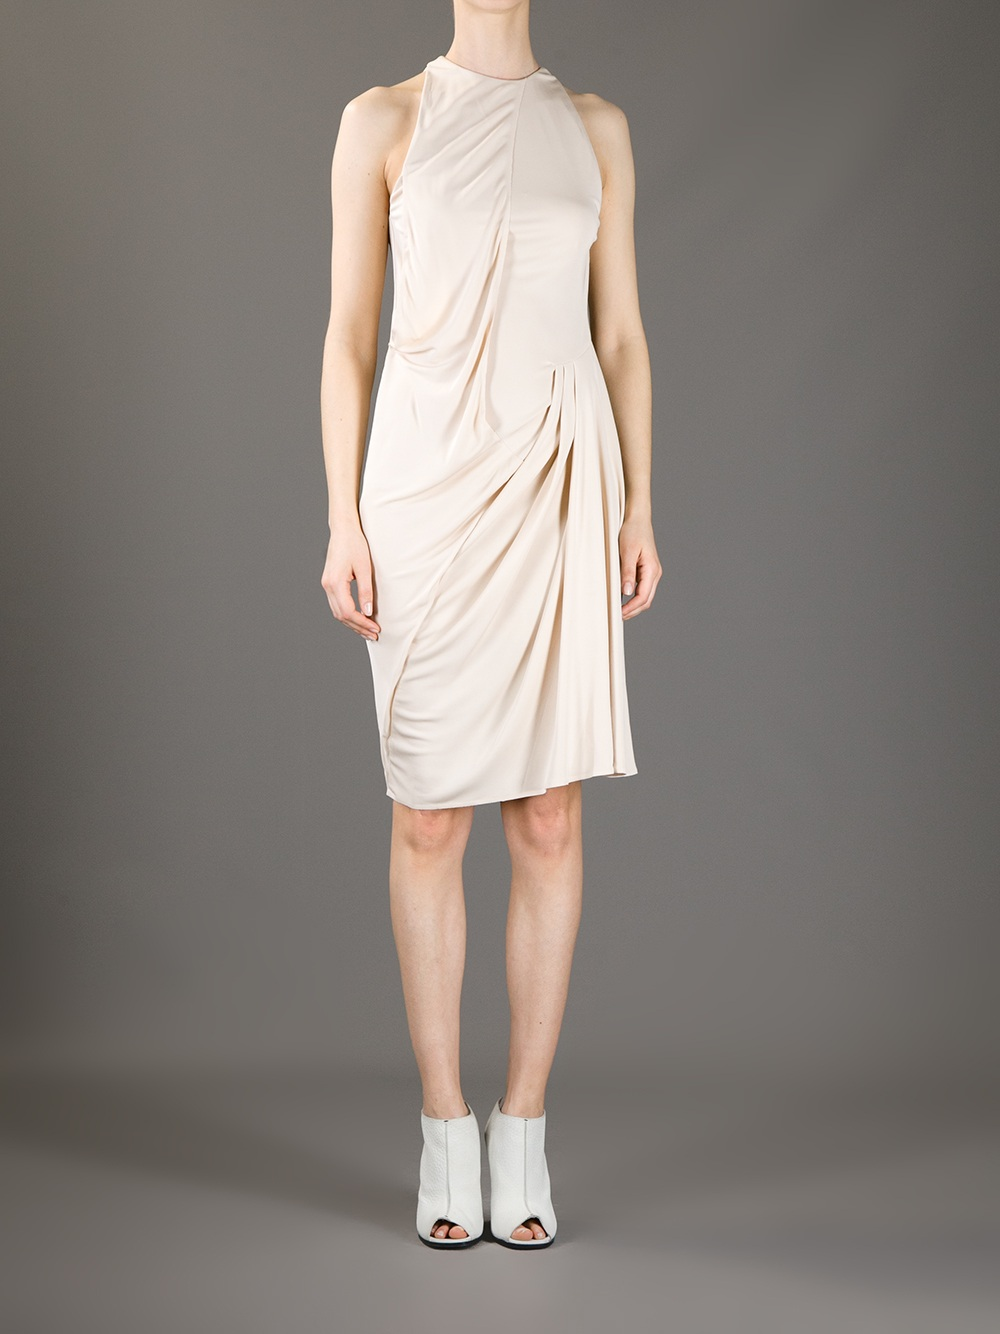 Acne Studios Piper Jersey Dress. Was: $367.90 Now: $183.95.